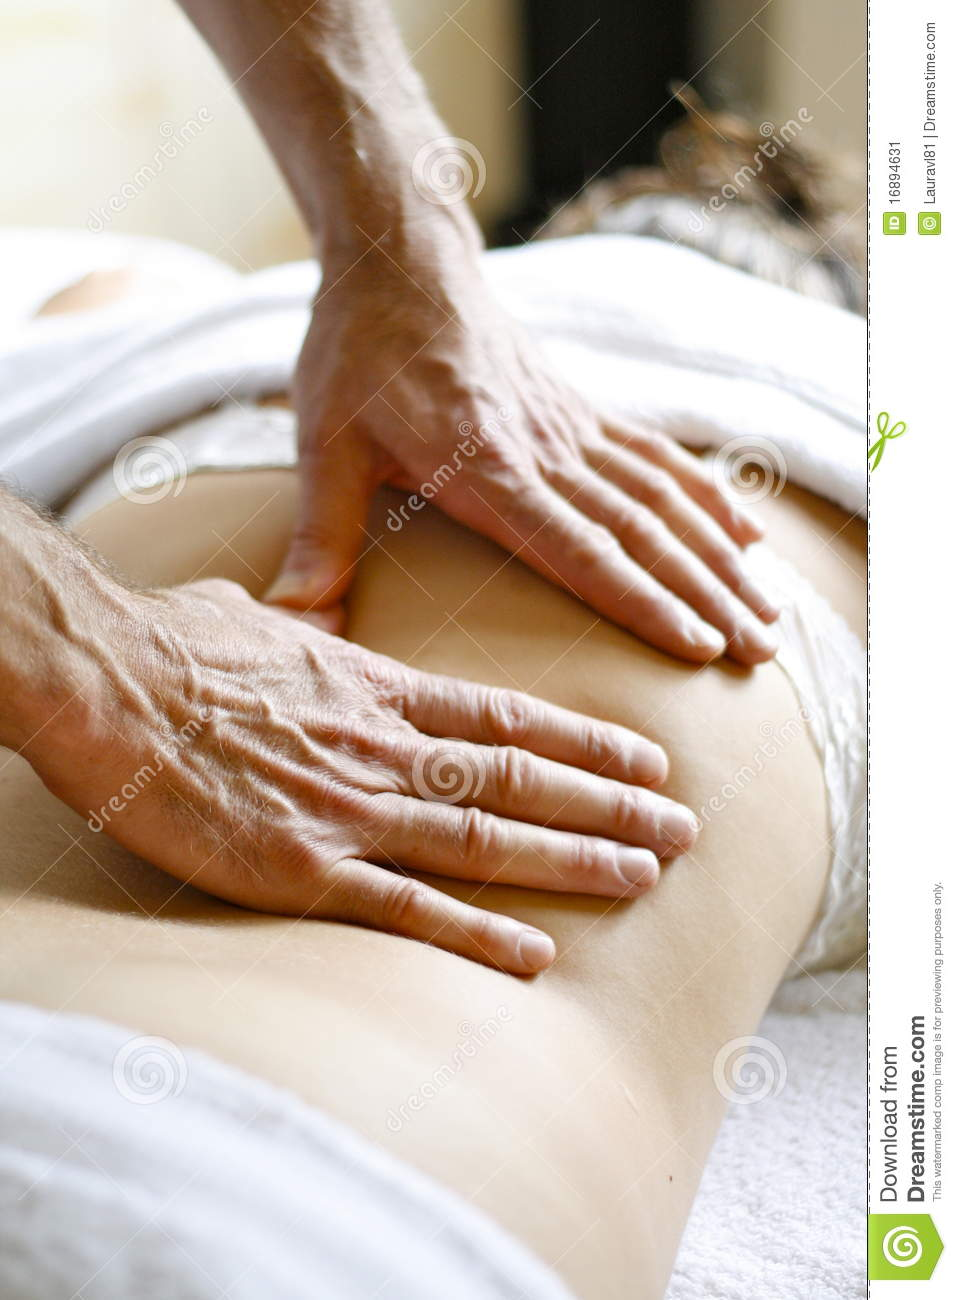 Masseur Search http://www.dreamstime.com/stock-image-masseur-image16894631